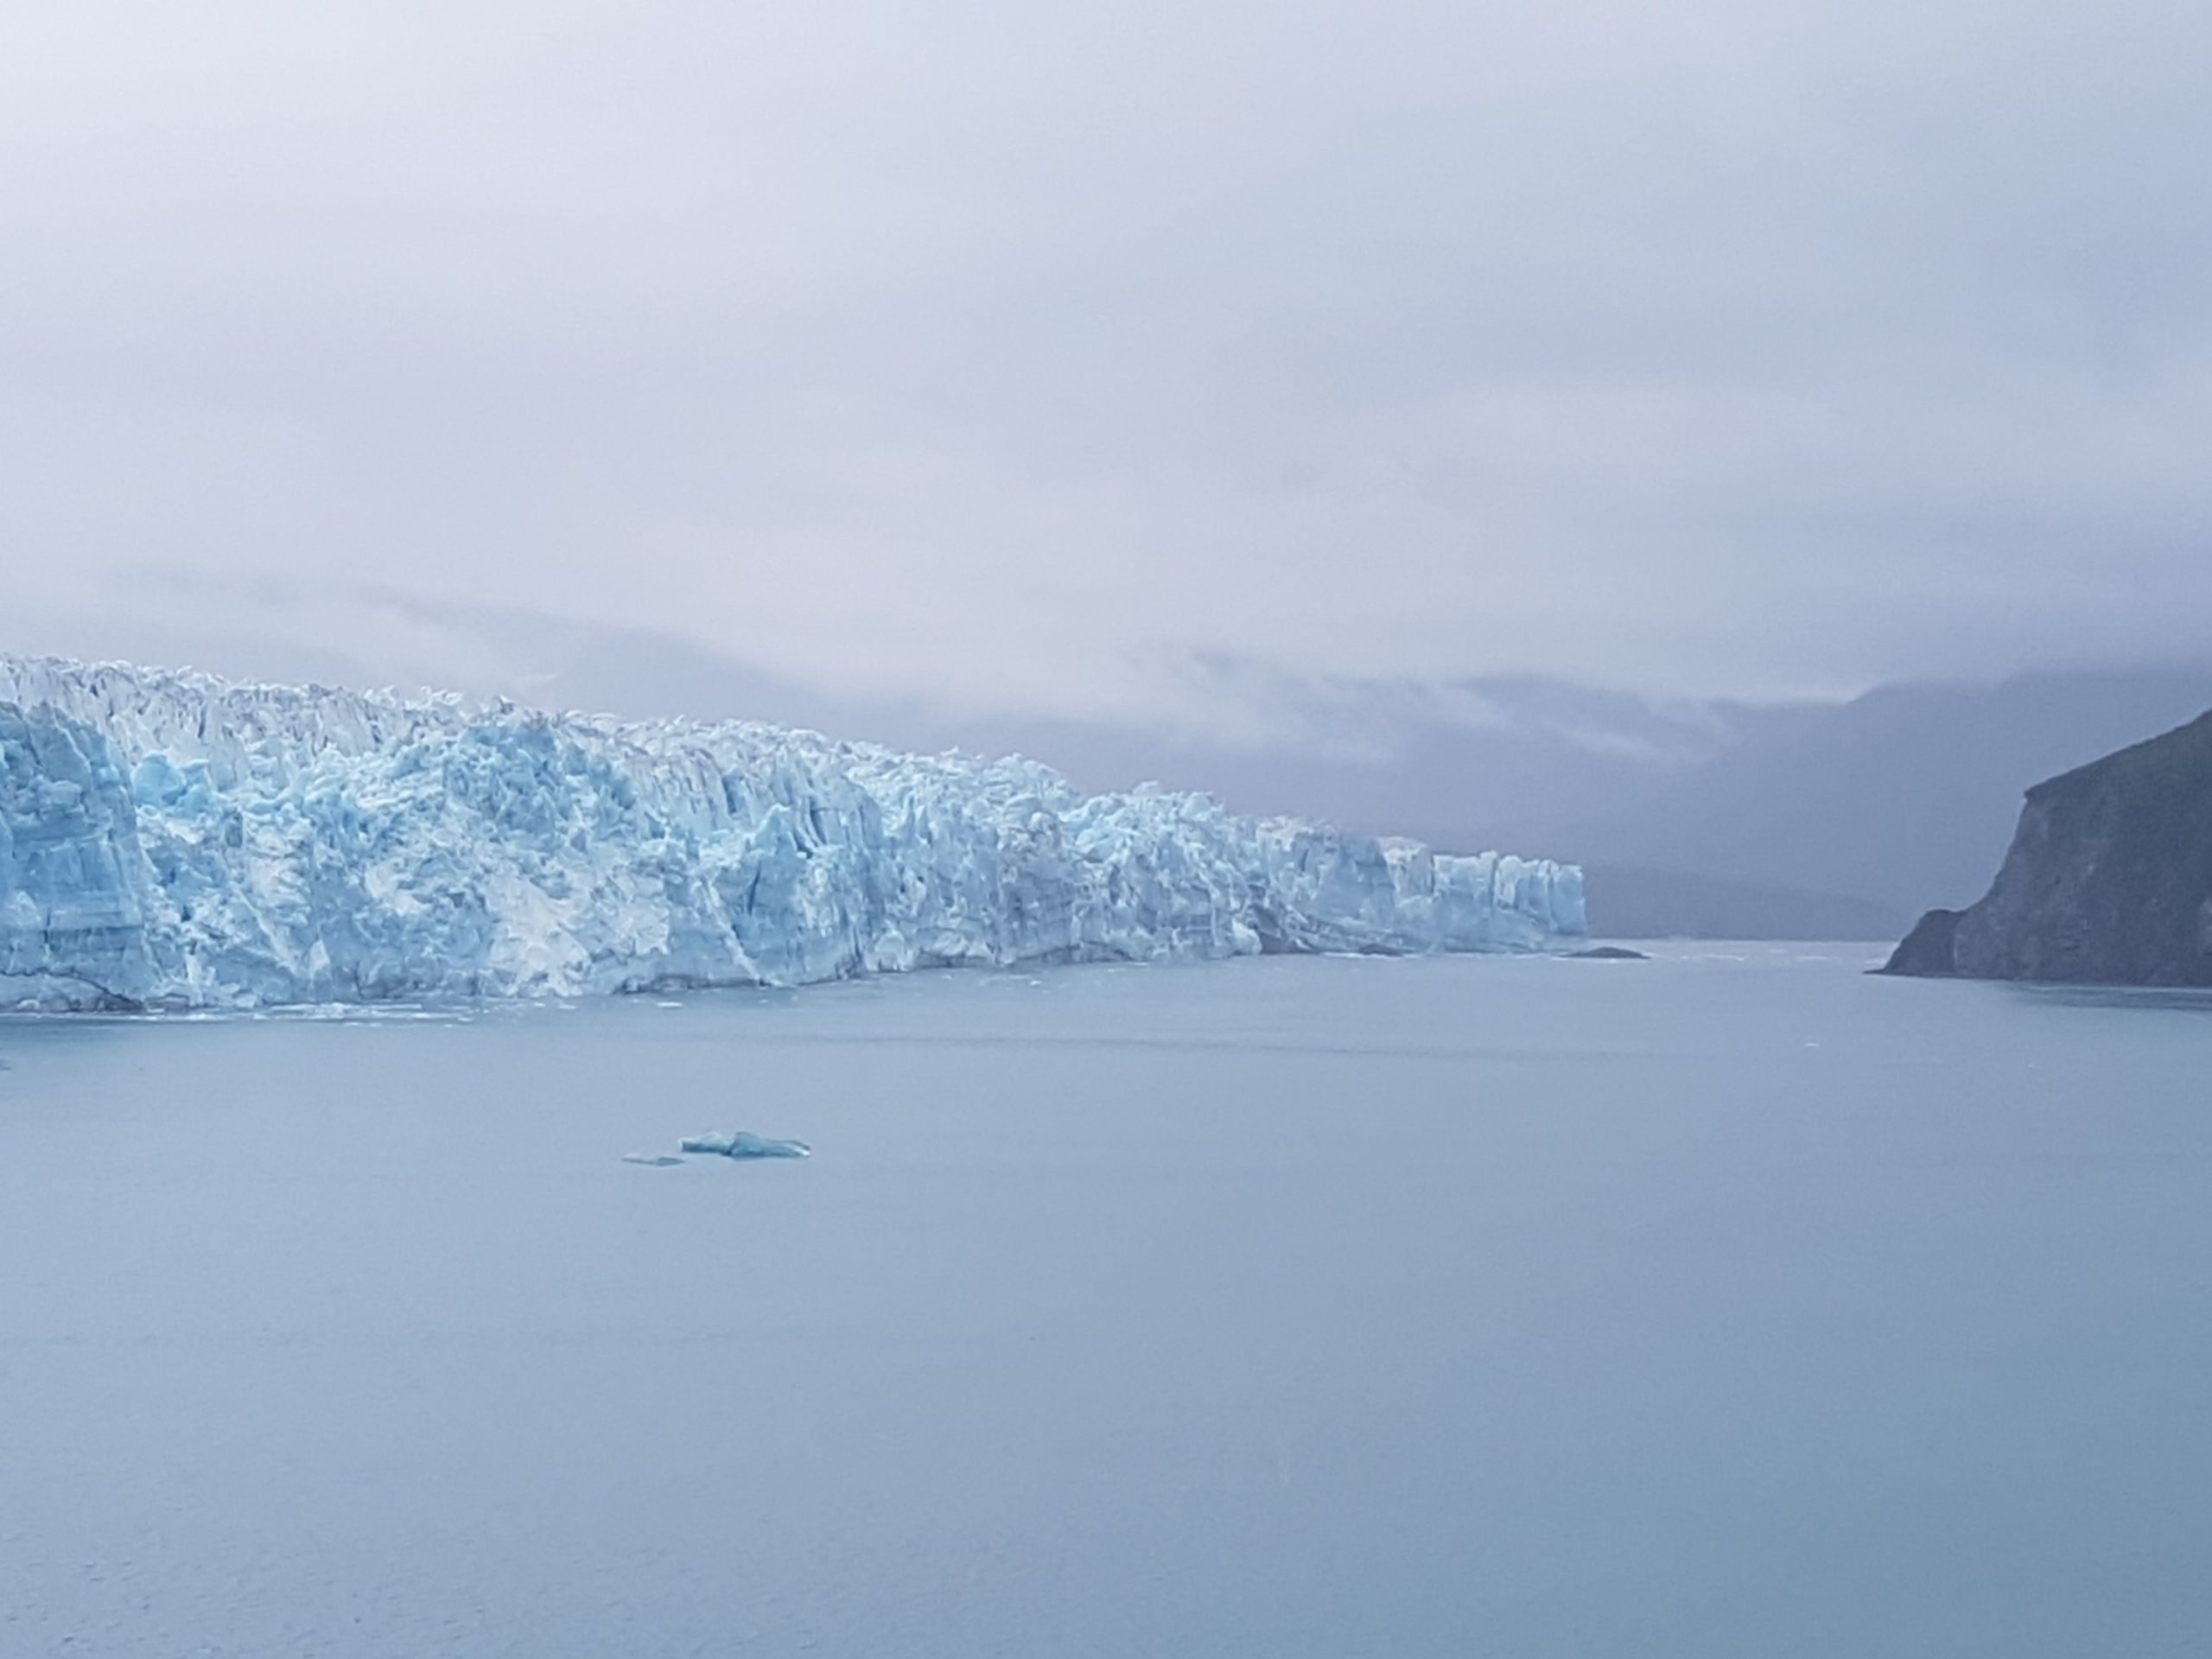 Hubbard Glacier from half mile out